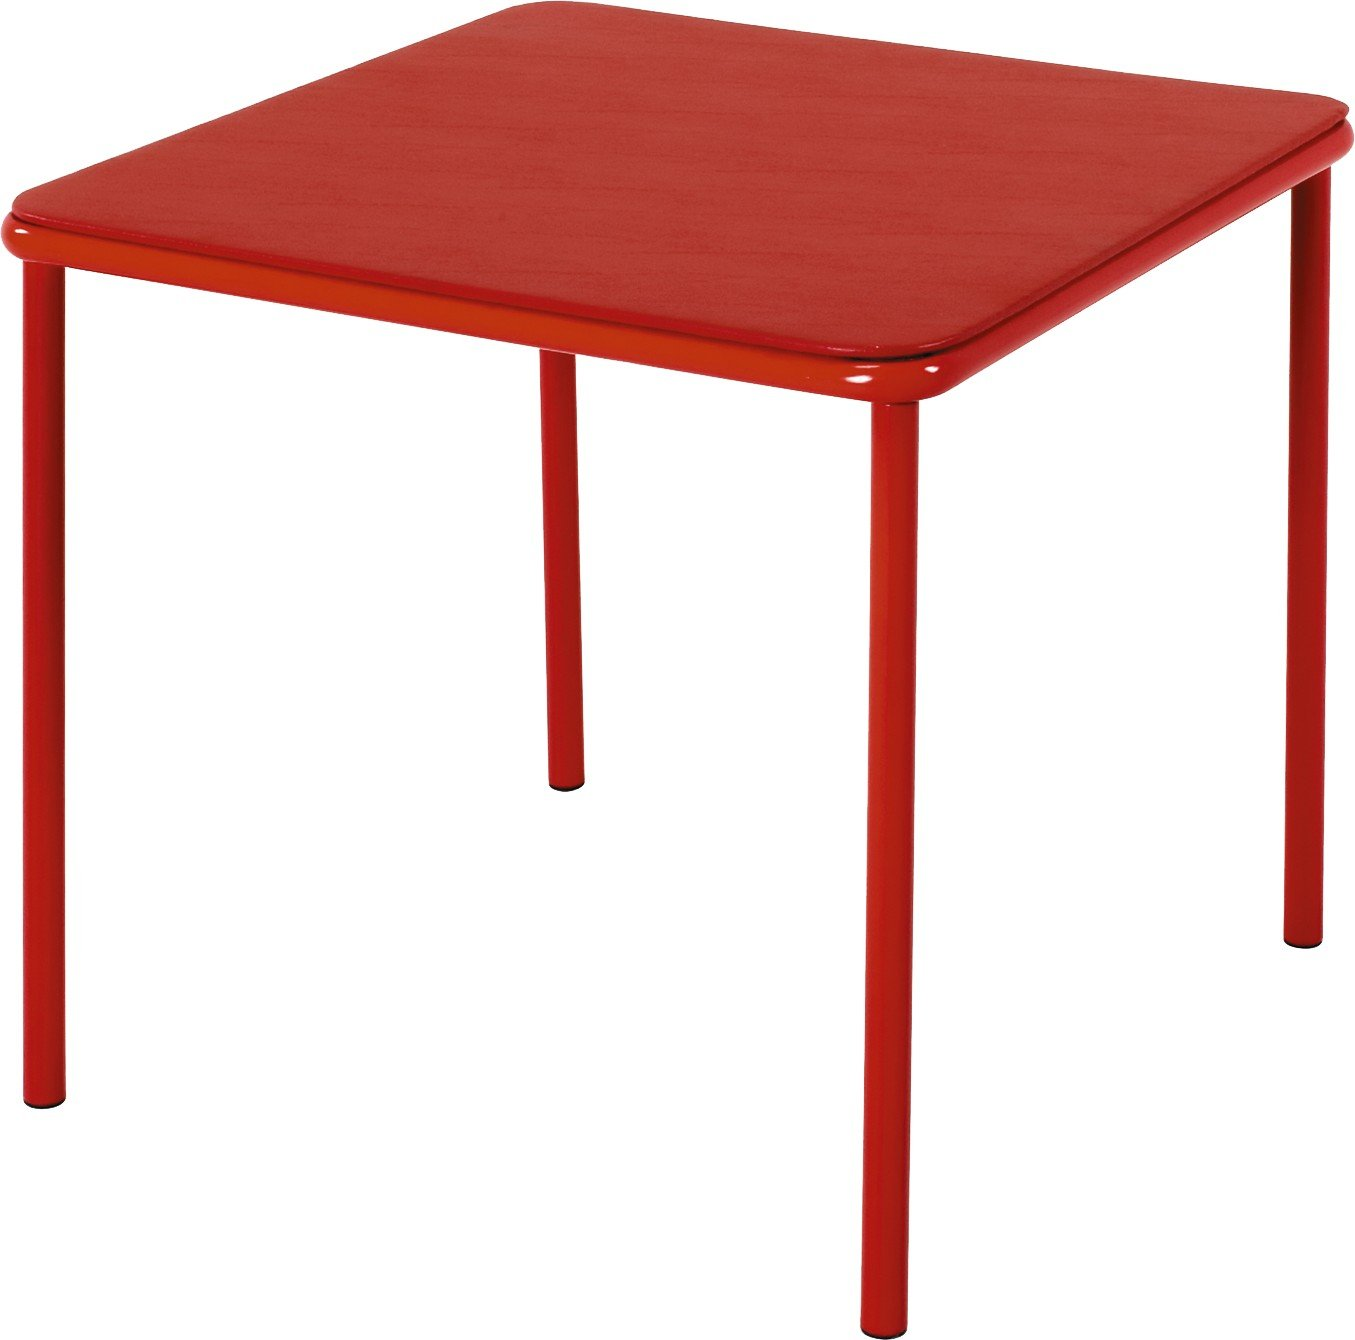 Cosco Kid's Vinyl Top Table Red